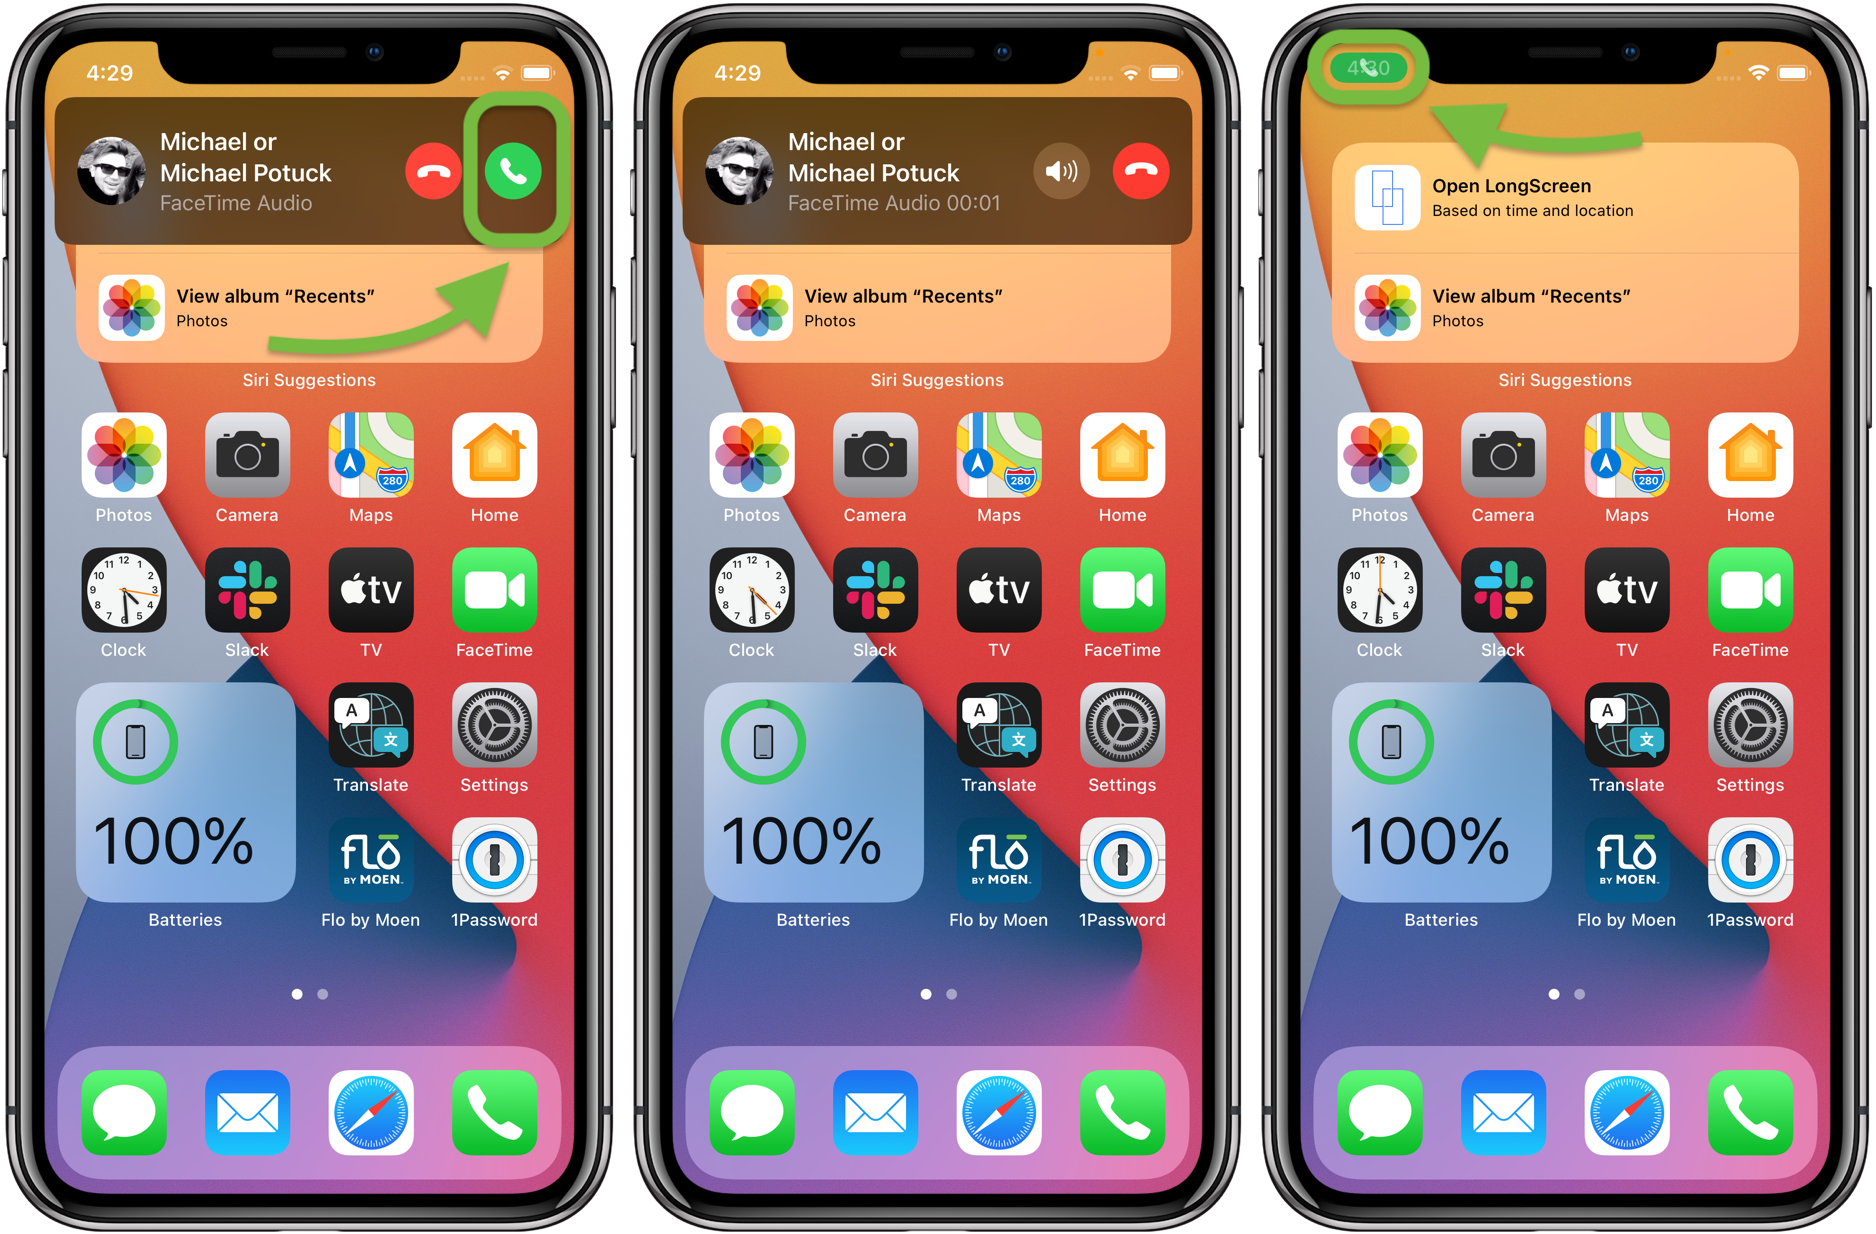 How to Use the Compact Call Interface for iPhone iOS 14 Walkthrough 1